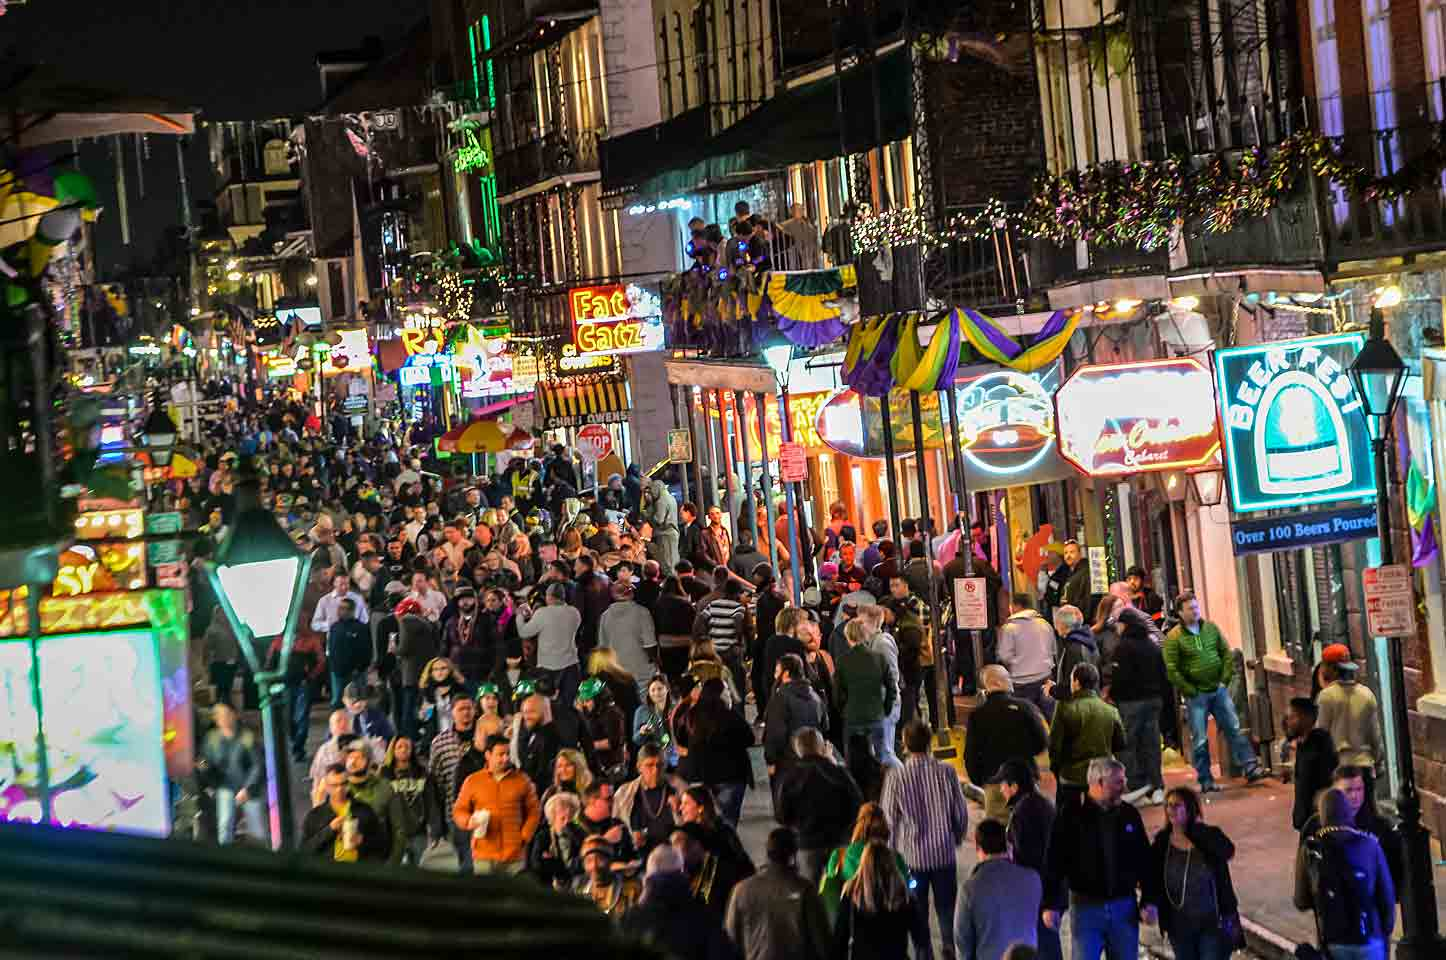 Partying with two million of their closest friends on Bourbon Street.